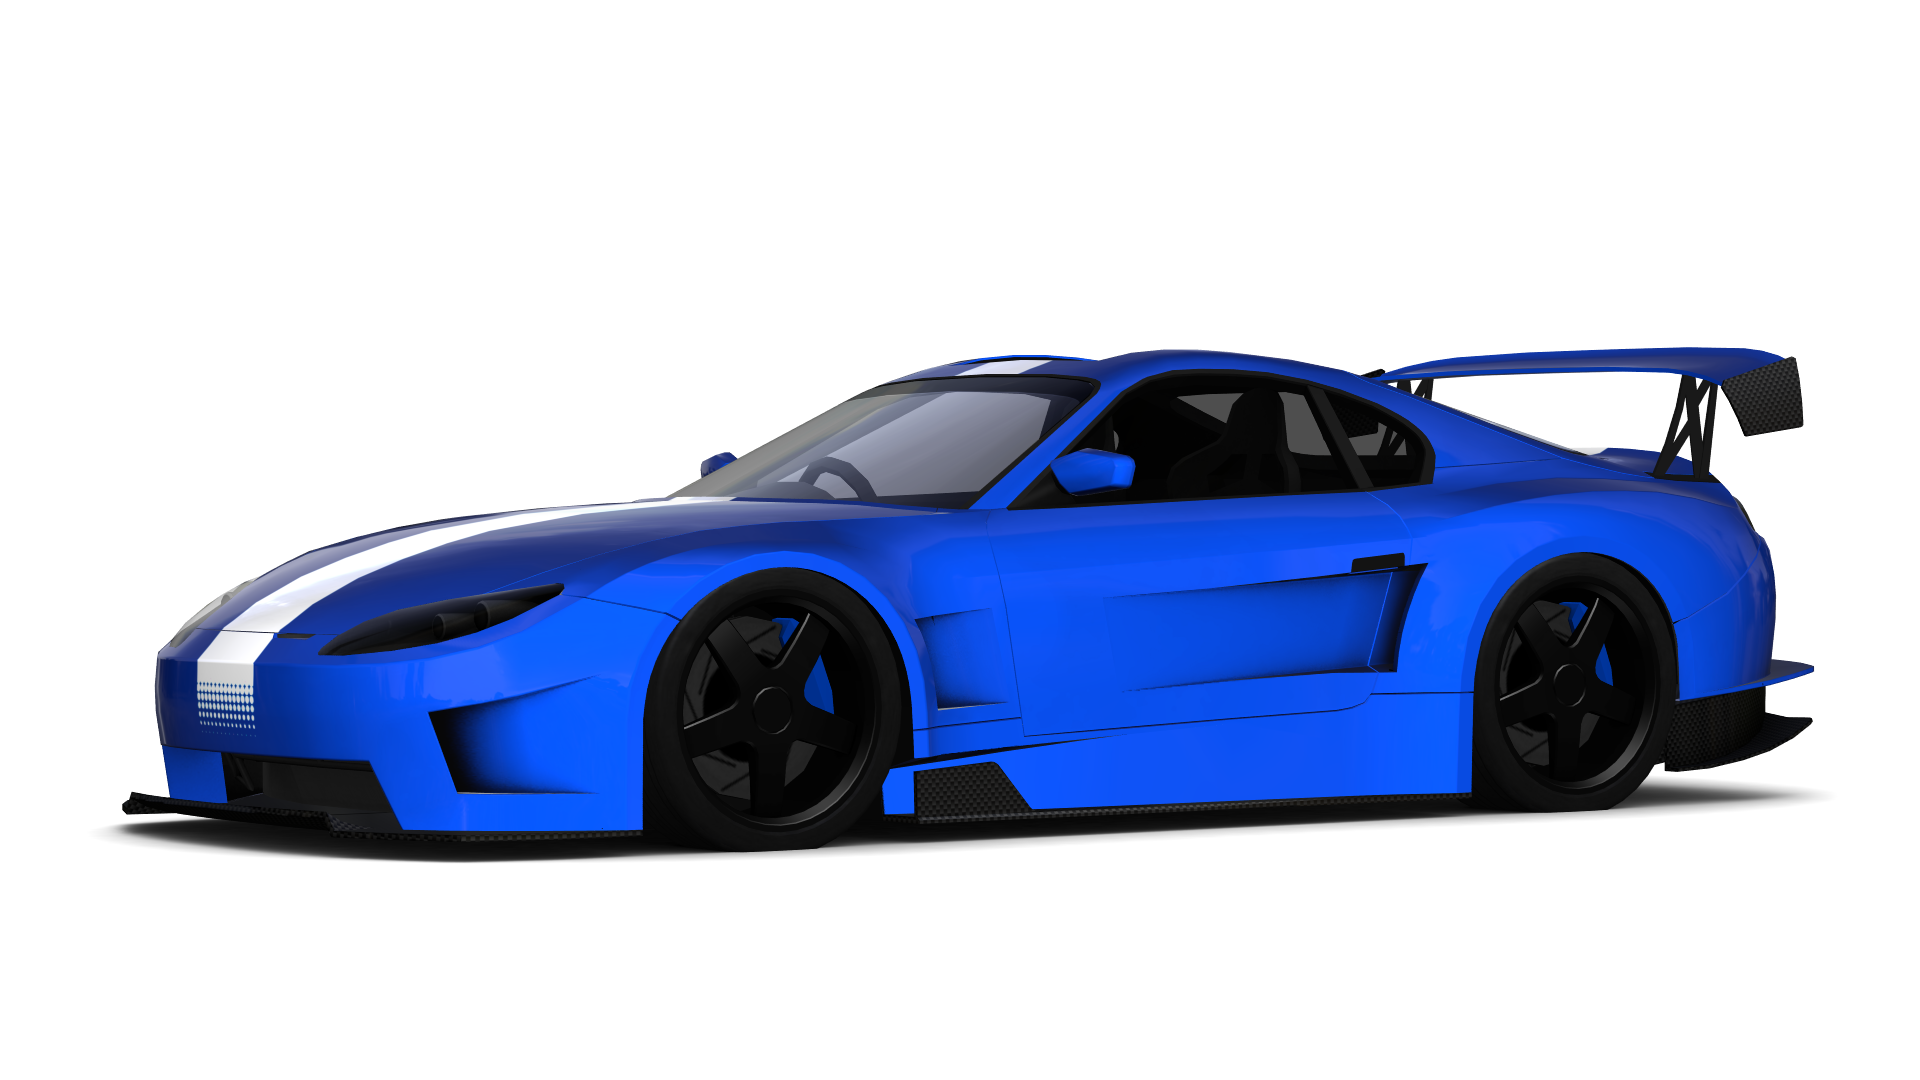 Racing Car by haiya for Leap Motion 3D Jam 2015 - itch.io